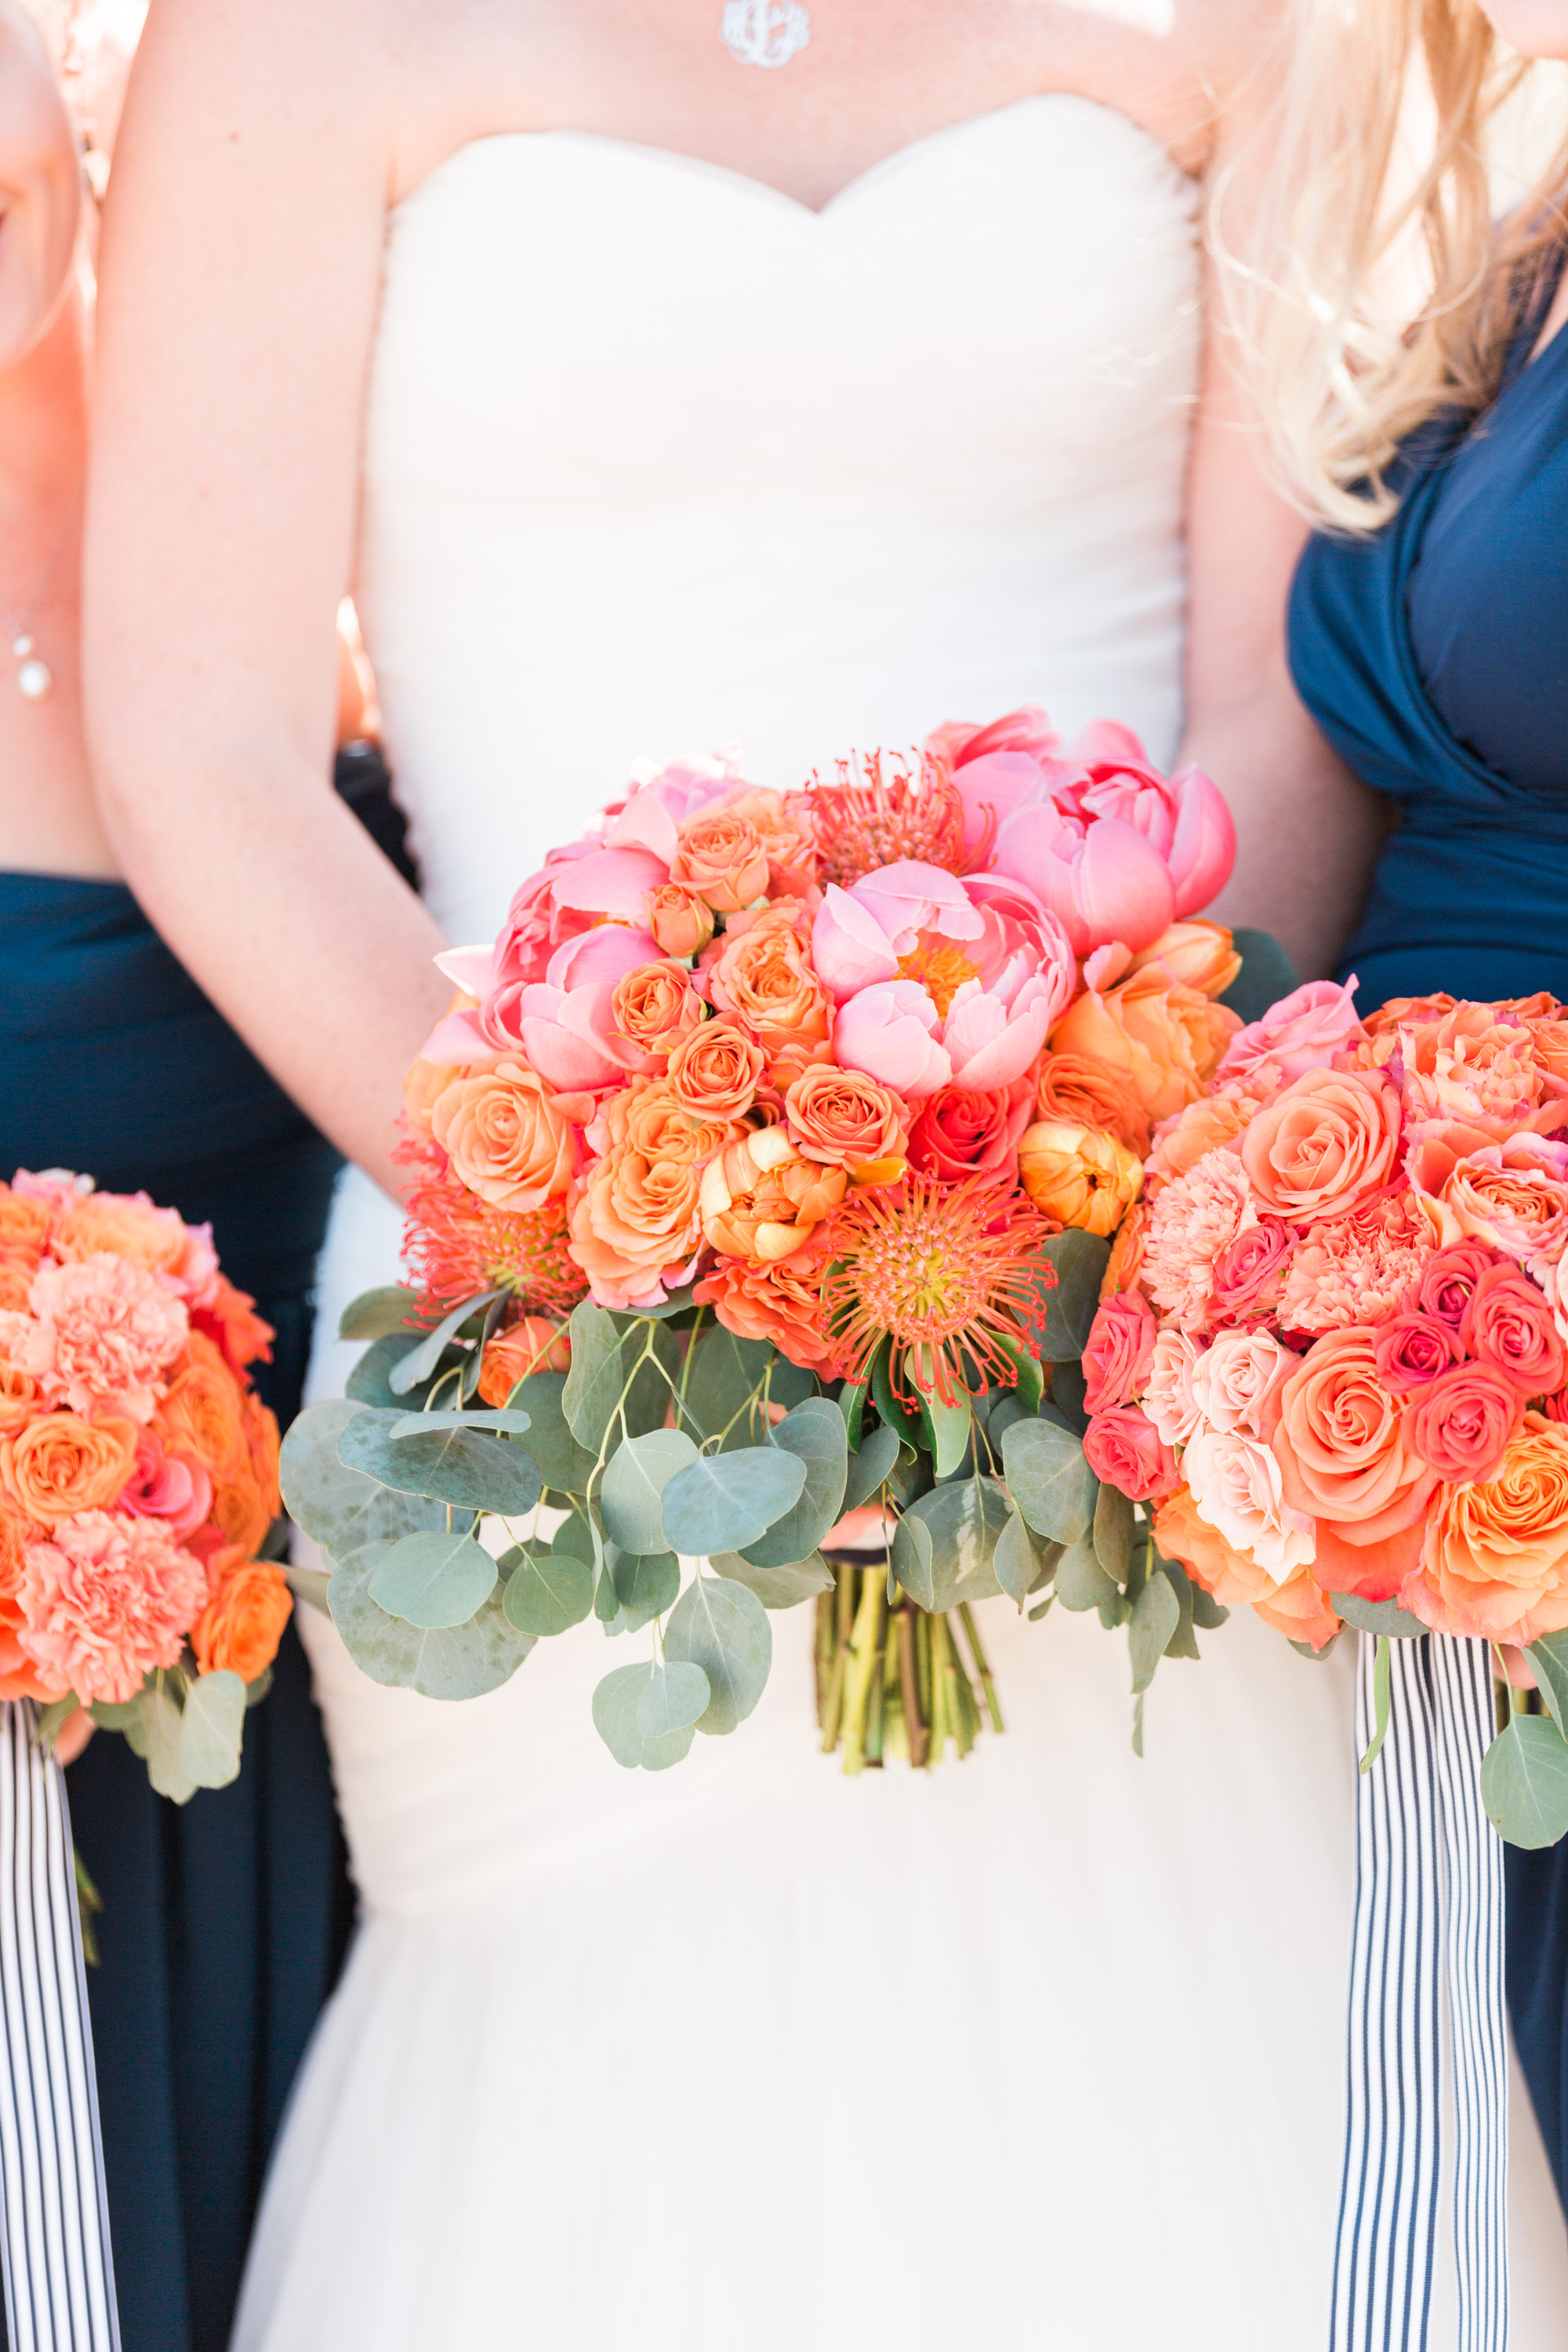 Bride in strapless sweetheart neckline wedding dress holding bouquet. Beautiful bouquet with pink peonies, salmon roses, orange protea pincushion and eucalyptus.